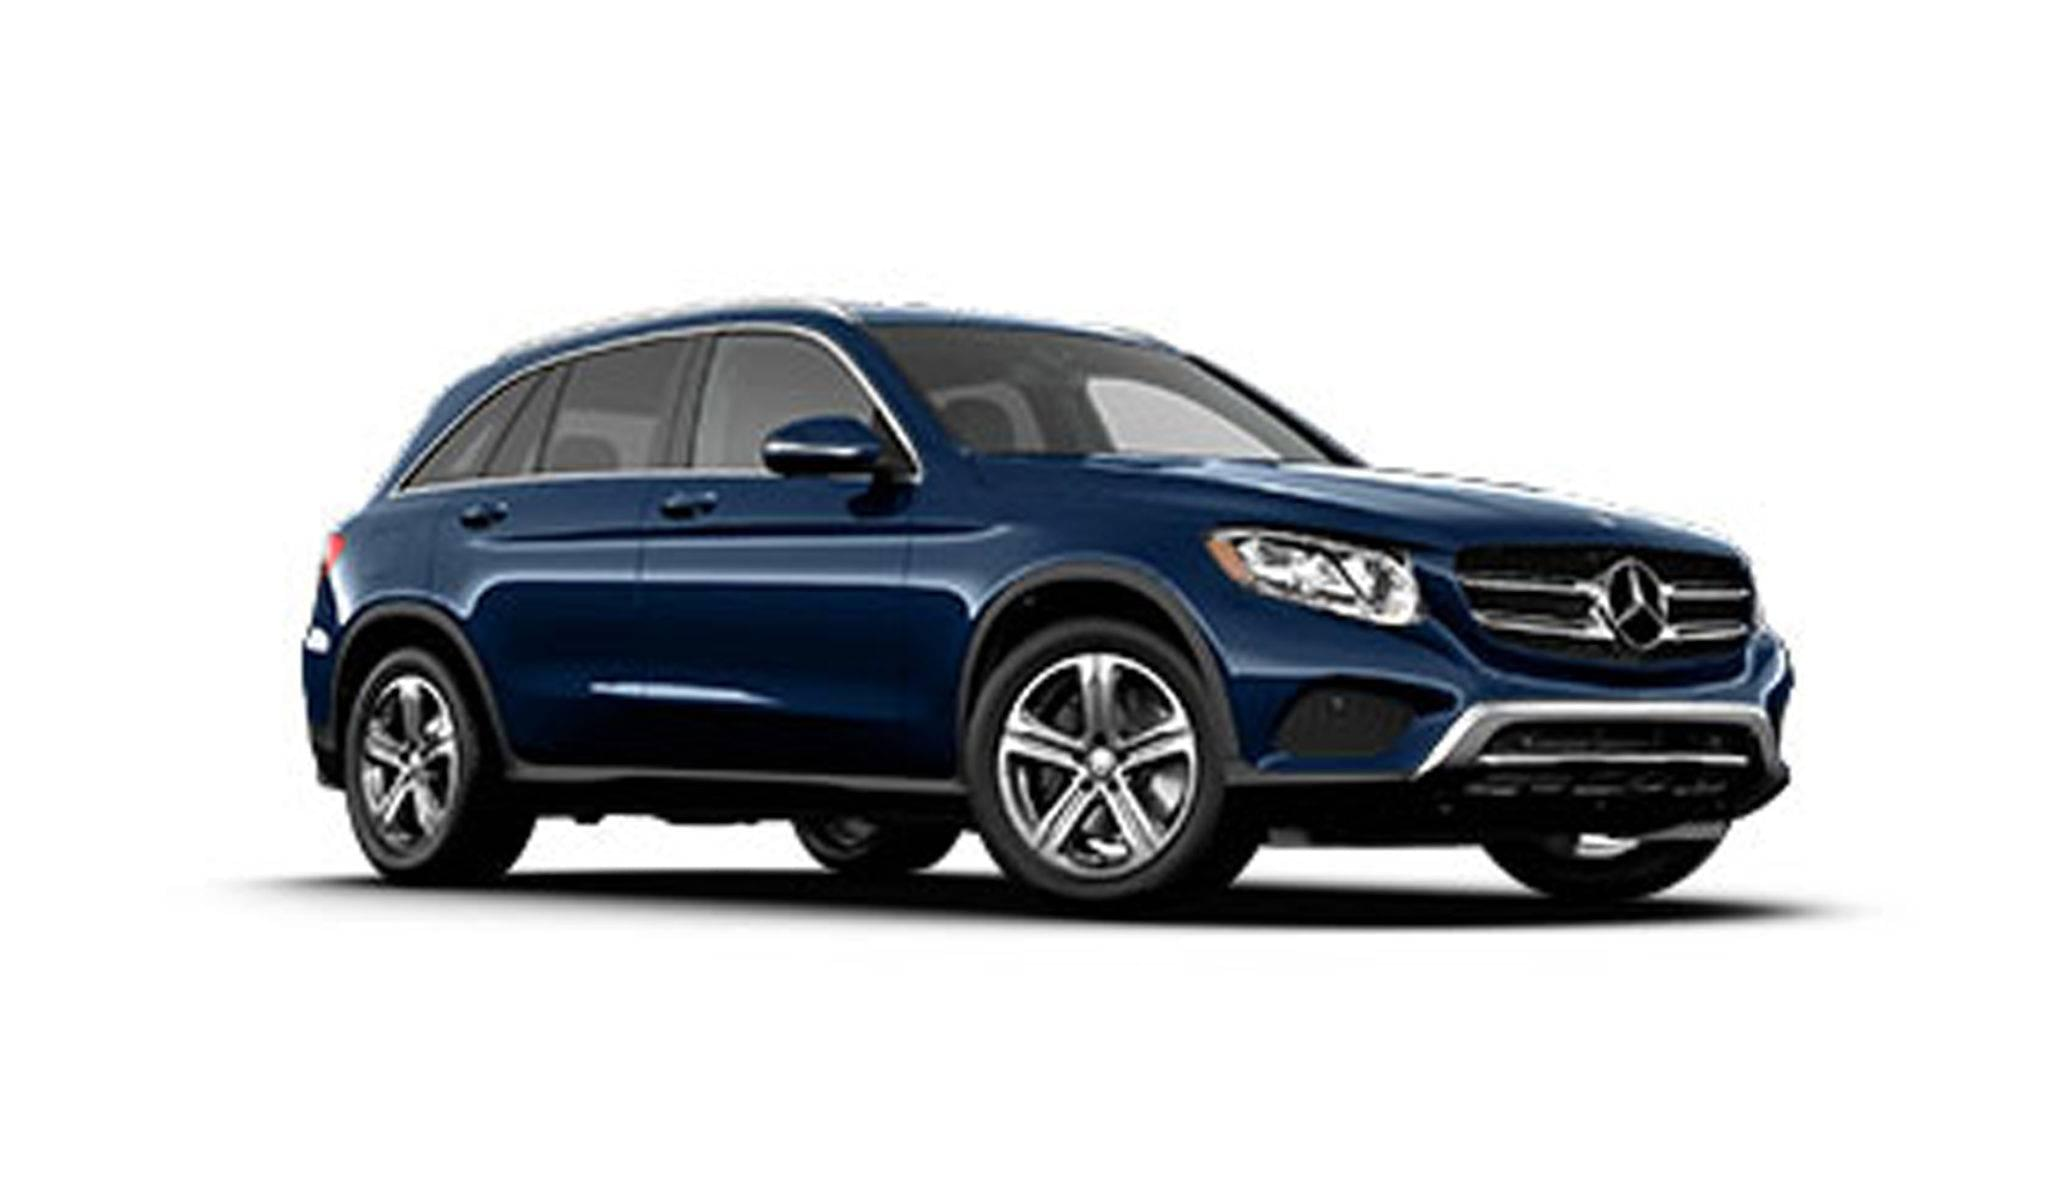 Certified Pre-Owned GLC Special Financing Rates